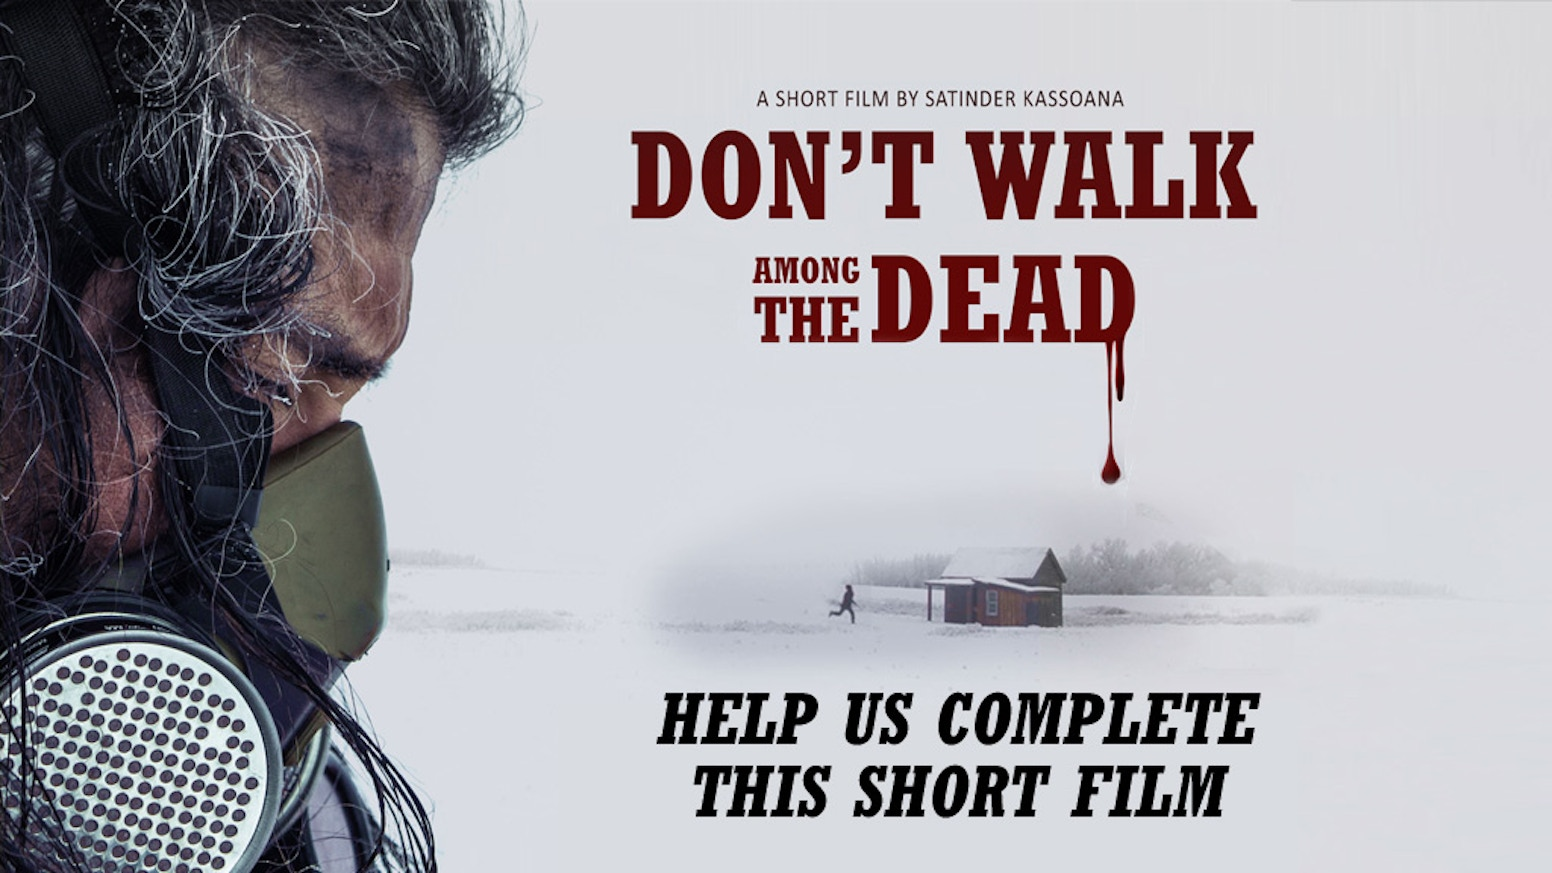 Don't Walk Among the Dead - A Post Apocalyptic Short Film by